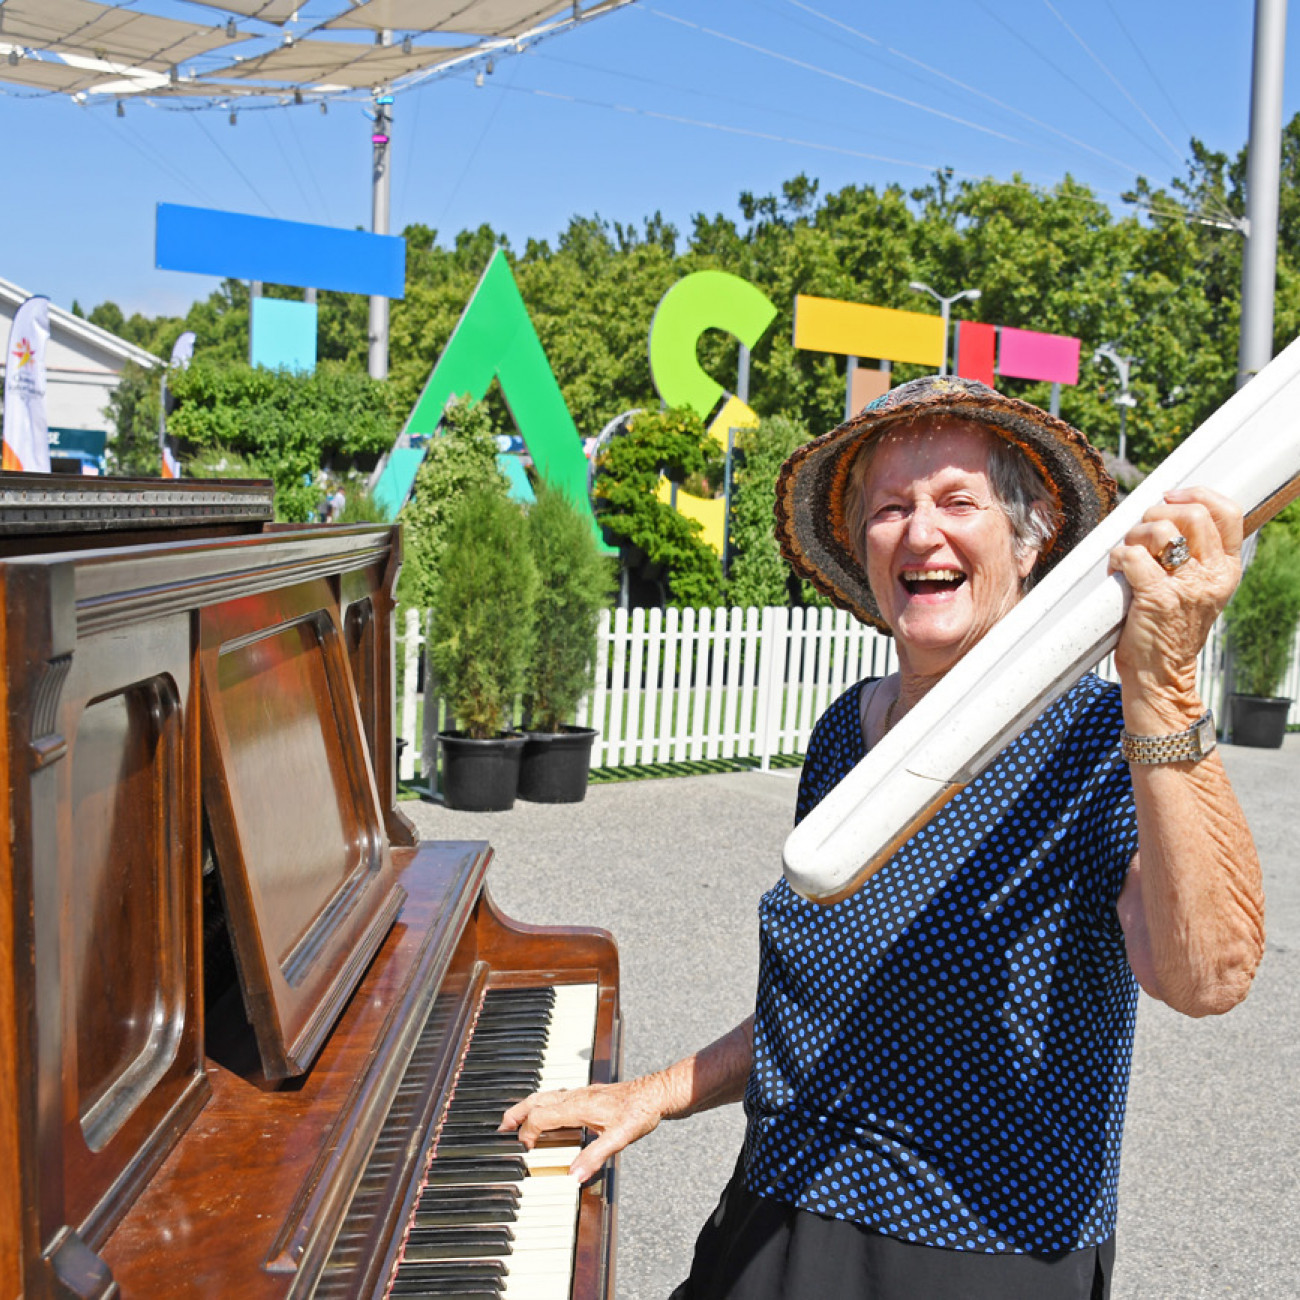 A woman plays a community piano while holding the Queen's Baton in front of the Taste of Tasmania sign